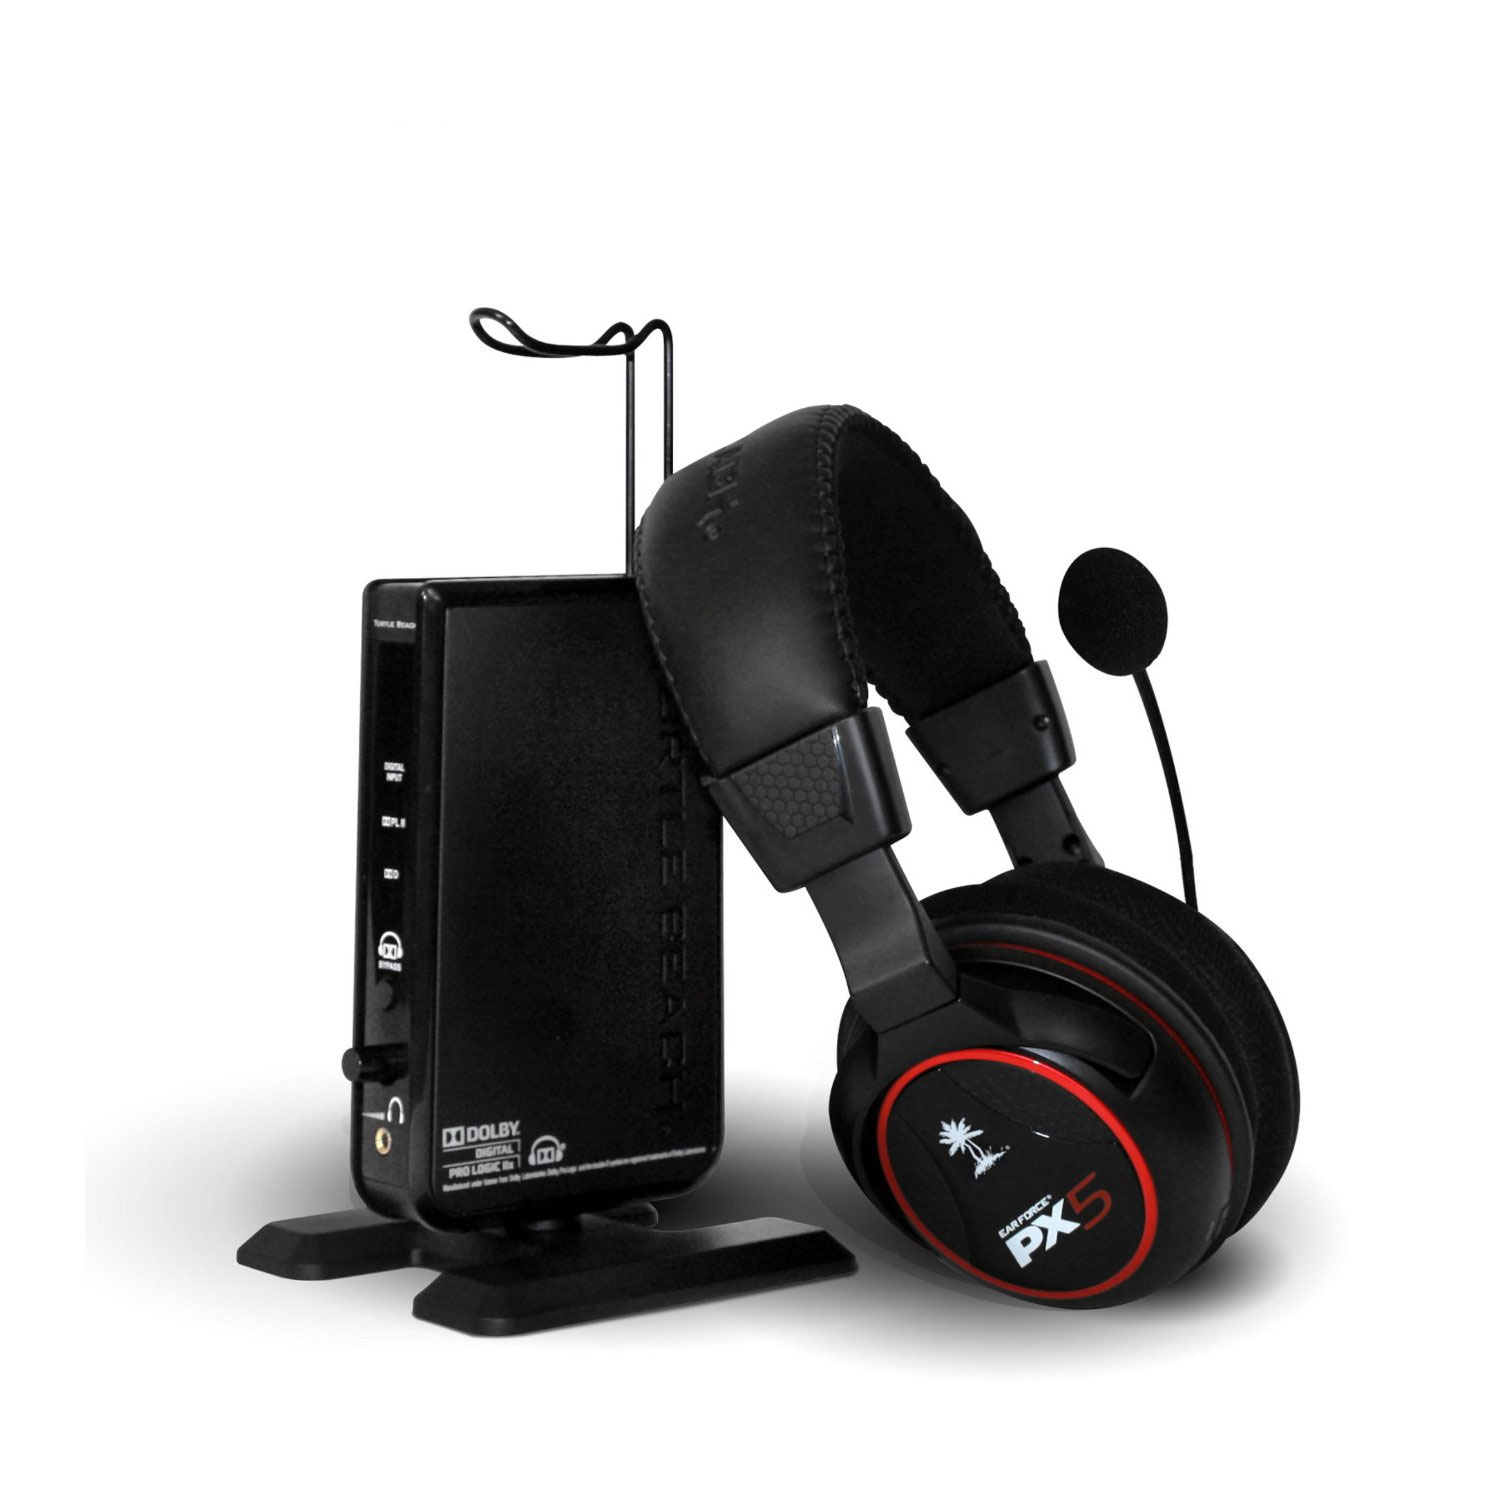 Turtle Beach Ear Force PX5 PS3/Xbox 360 Headset